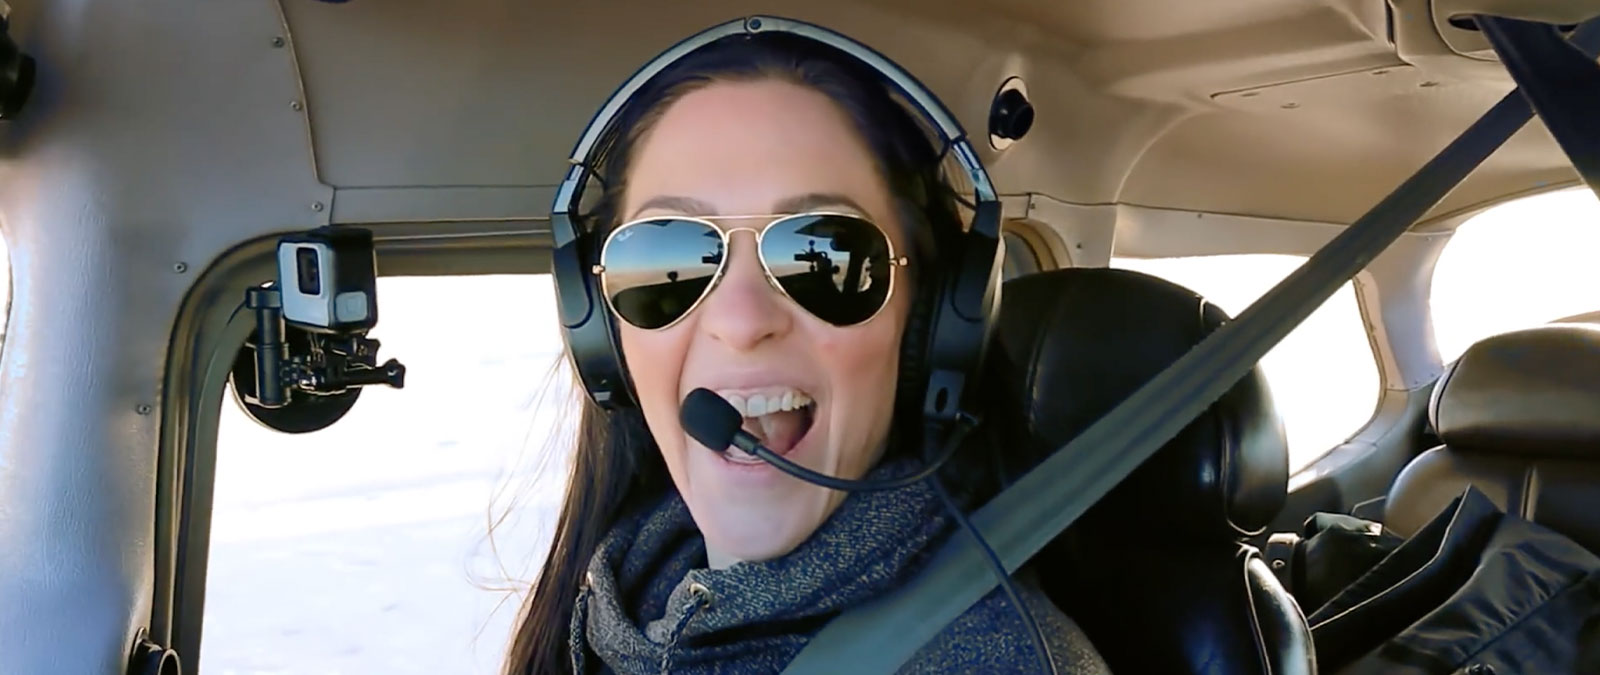 Pilot Emilie flying a plane with a headset and sunglasses